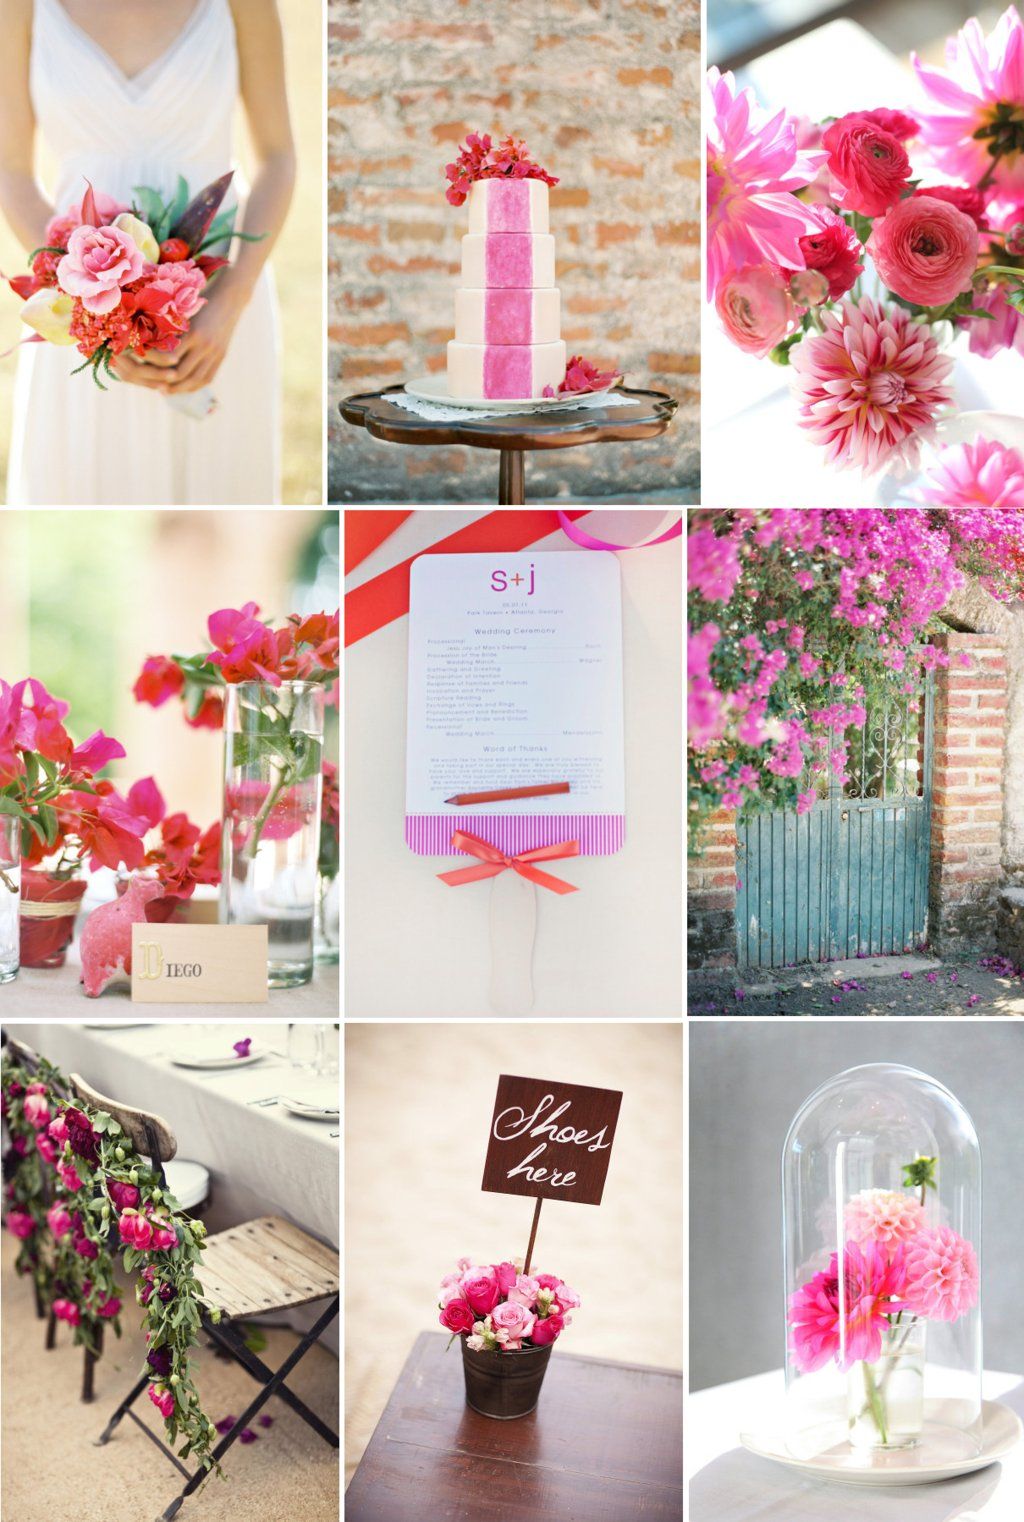 Girly-wedding-color-palette-mixed-hues-of-pink-fuschia-red-spring-summer-outdoor-weddings.full